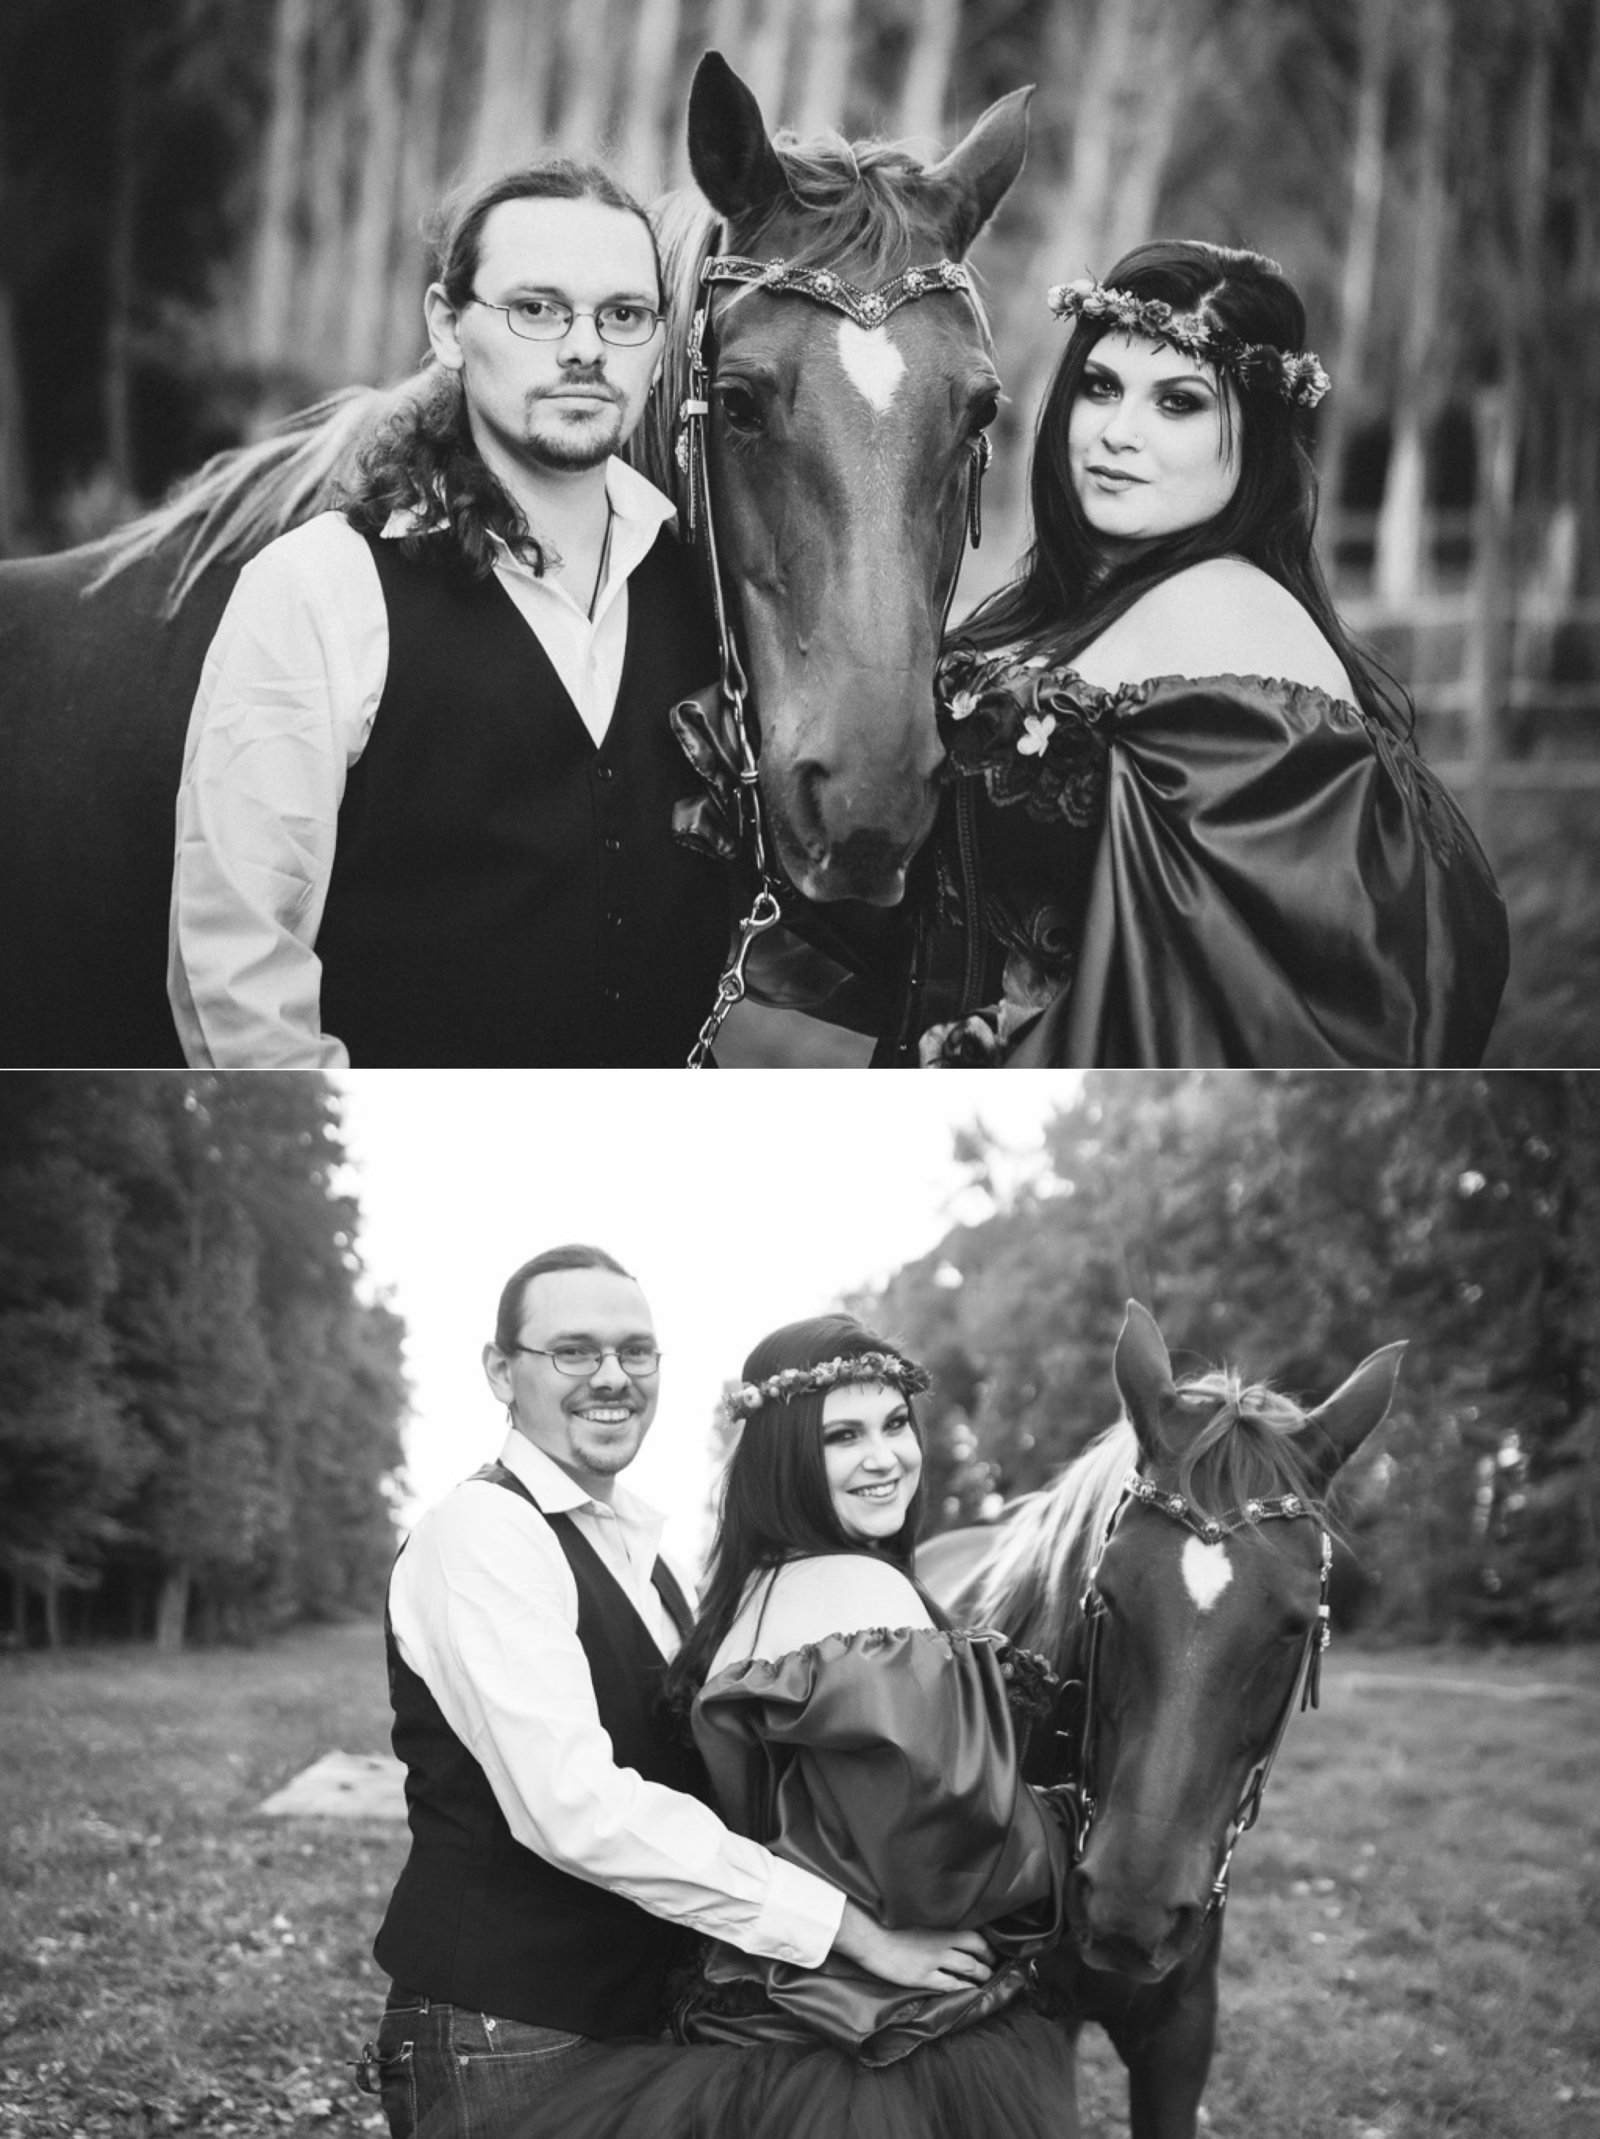 Horse_Farm_Engagement_shoot_new_jersey_wedding_Photography007